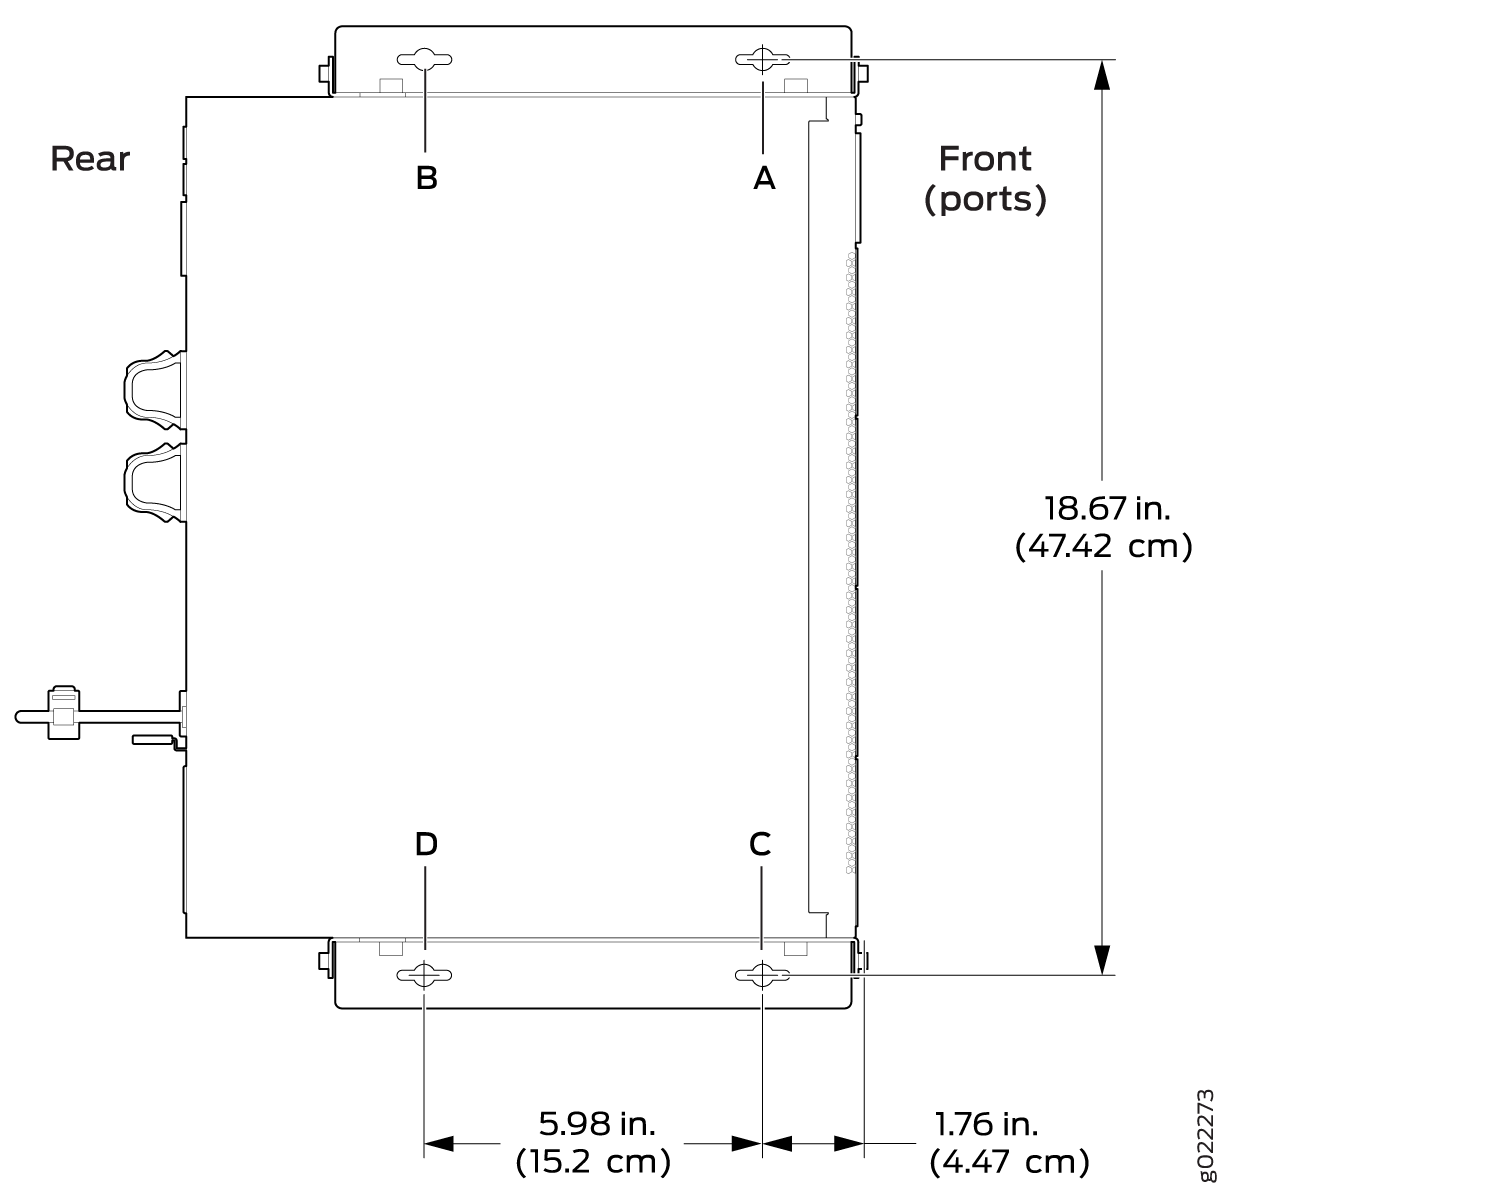 Measurements for Installing Mounting Screws